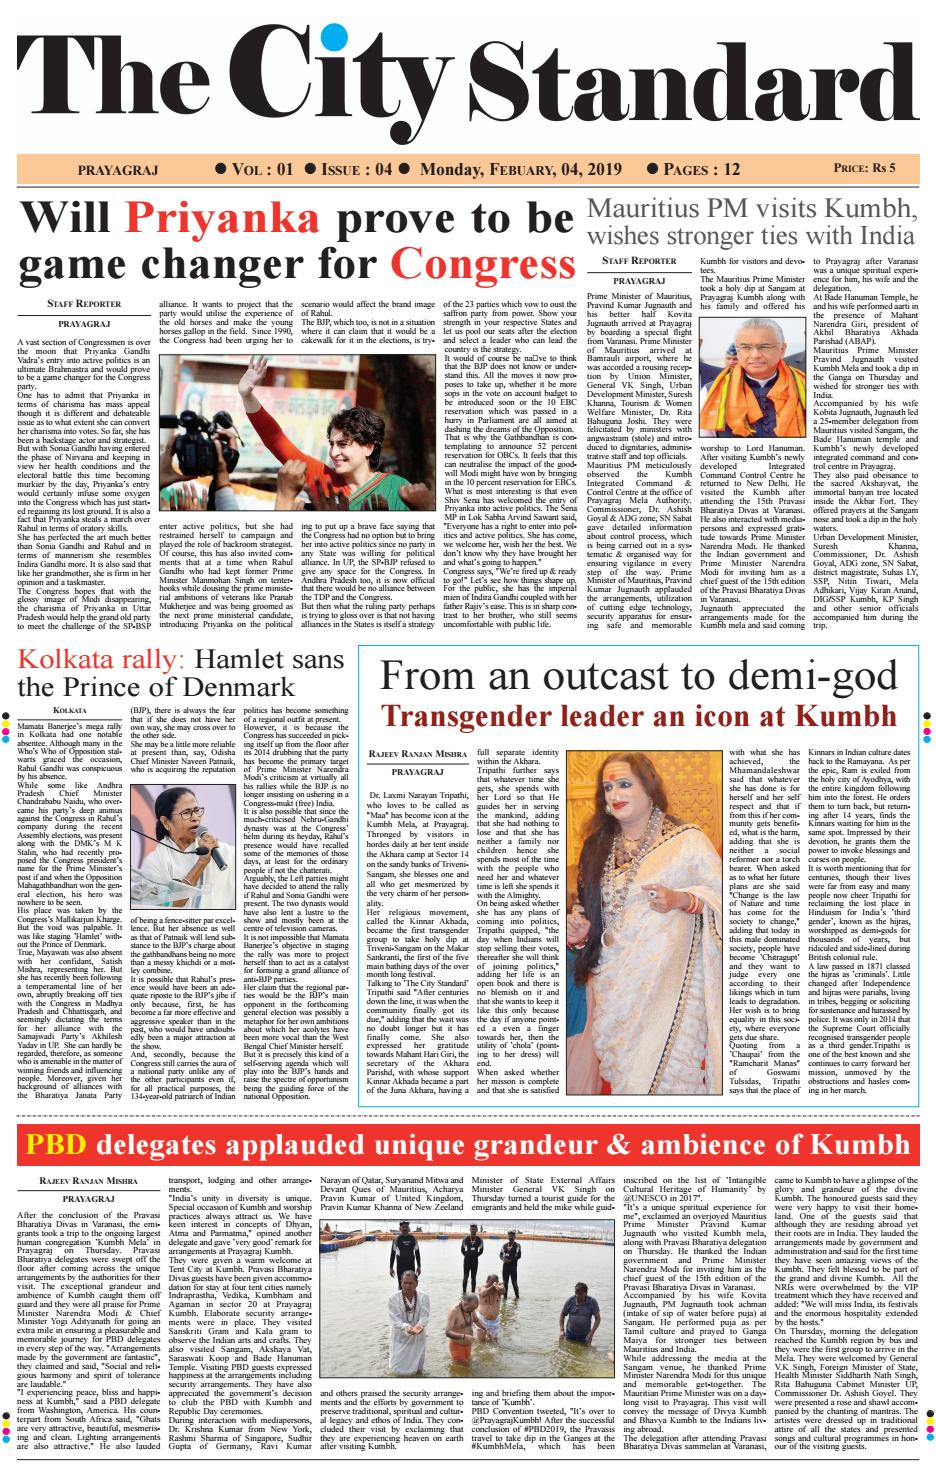 The City Standard February 4th, 2019- 4th issue by Sandeep